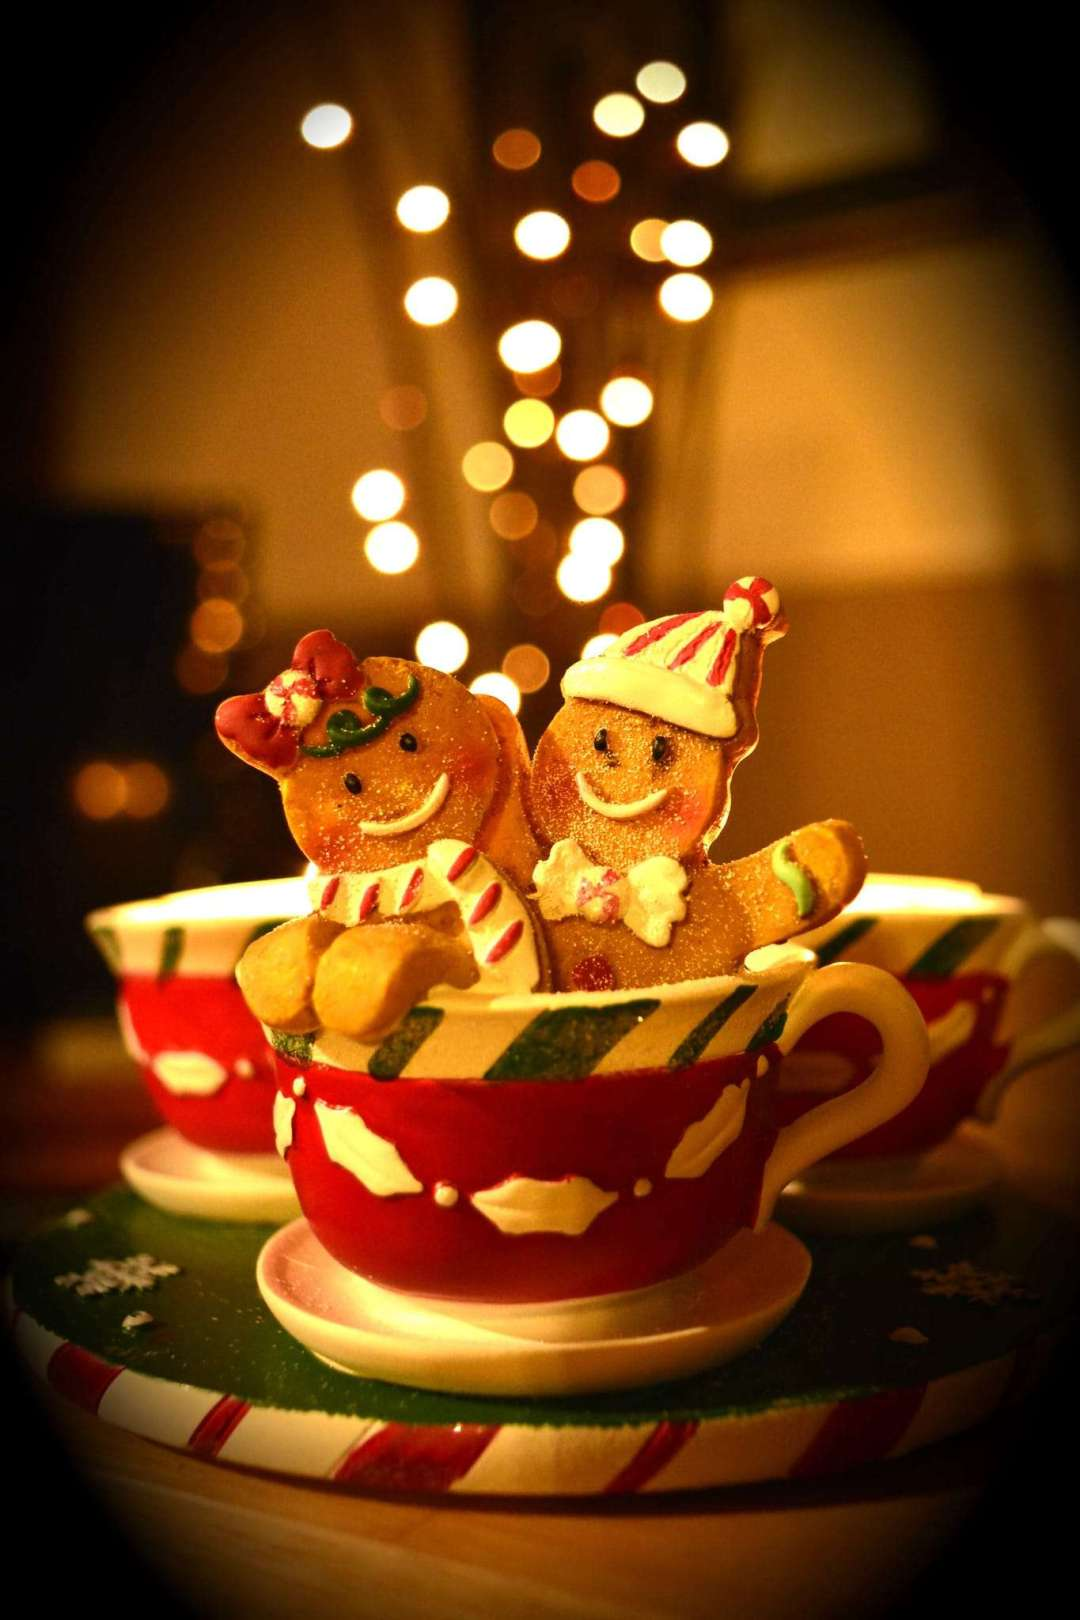 T Ching Classics: Decadent Holiday Tea Desserts - Photo of gingerbread people in tea cup